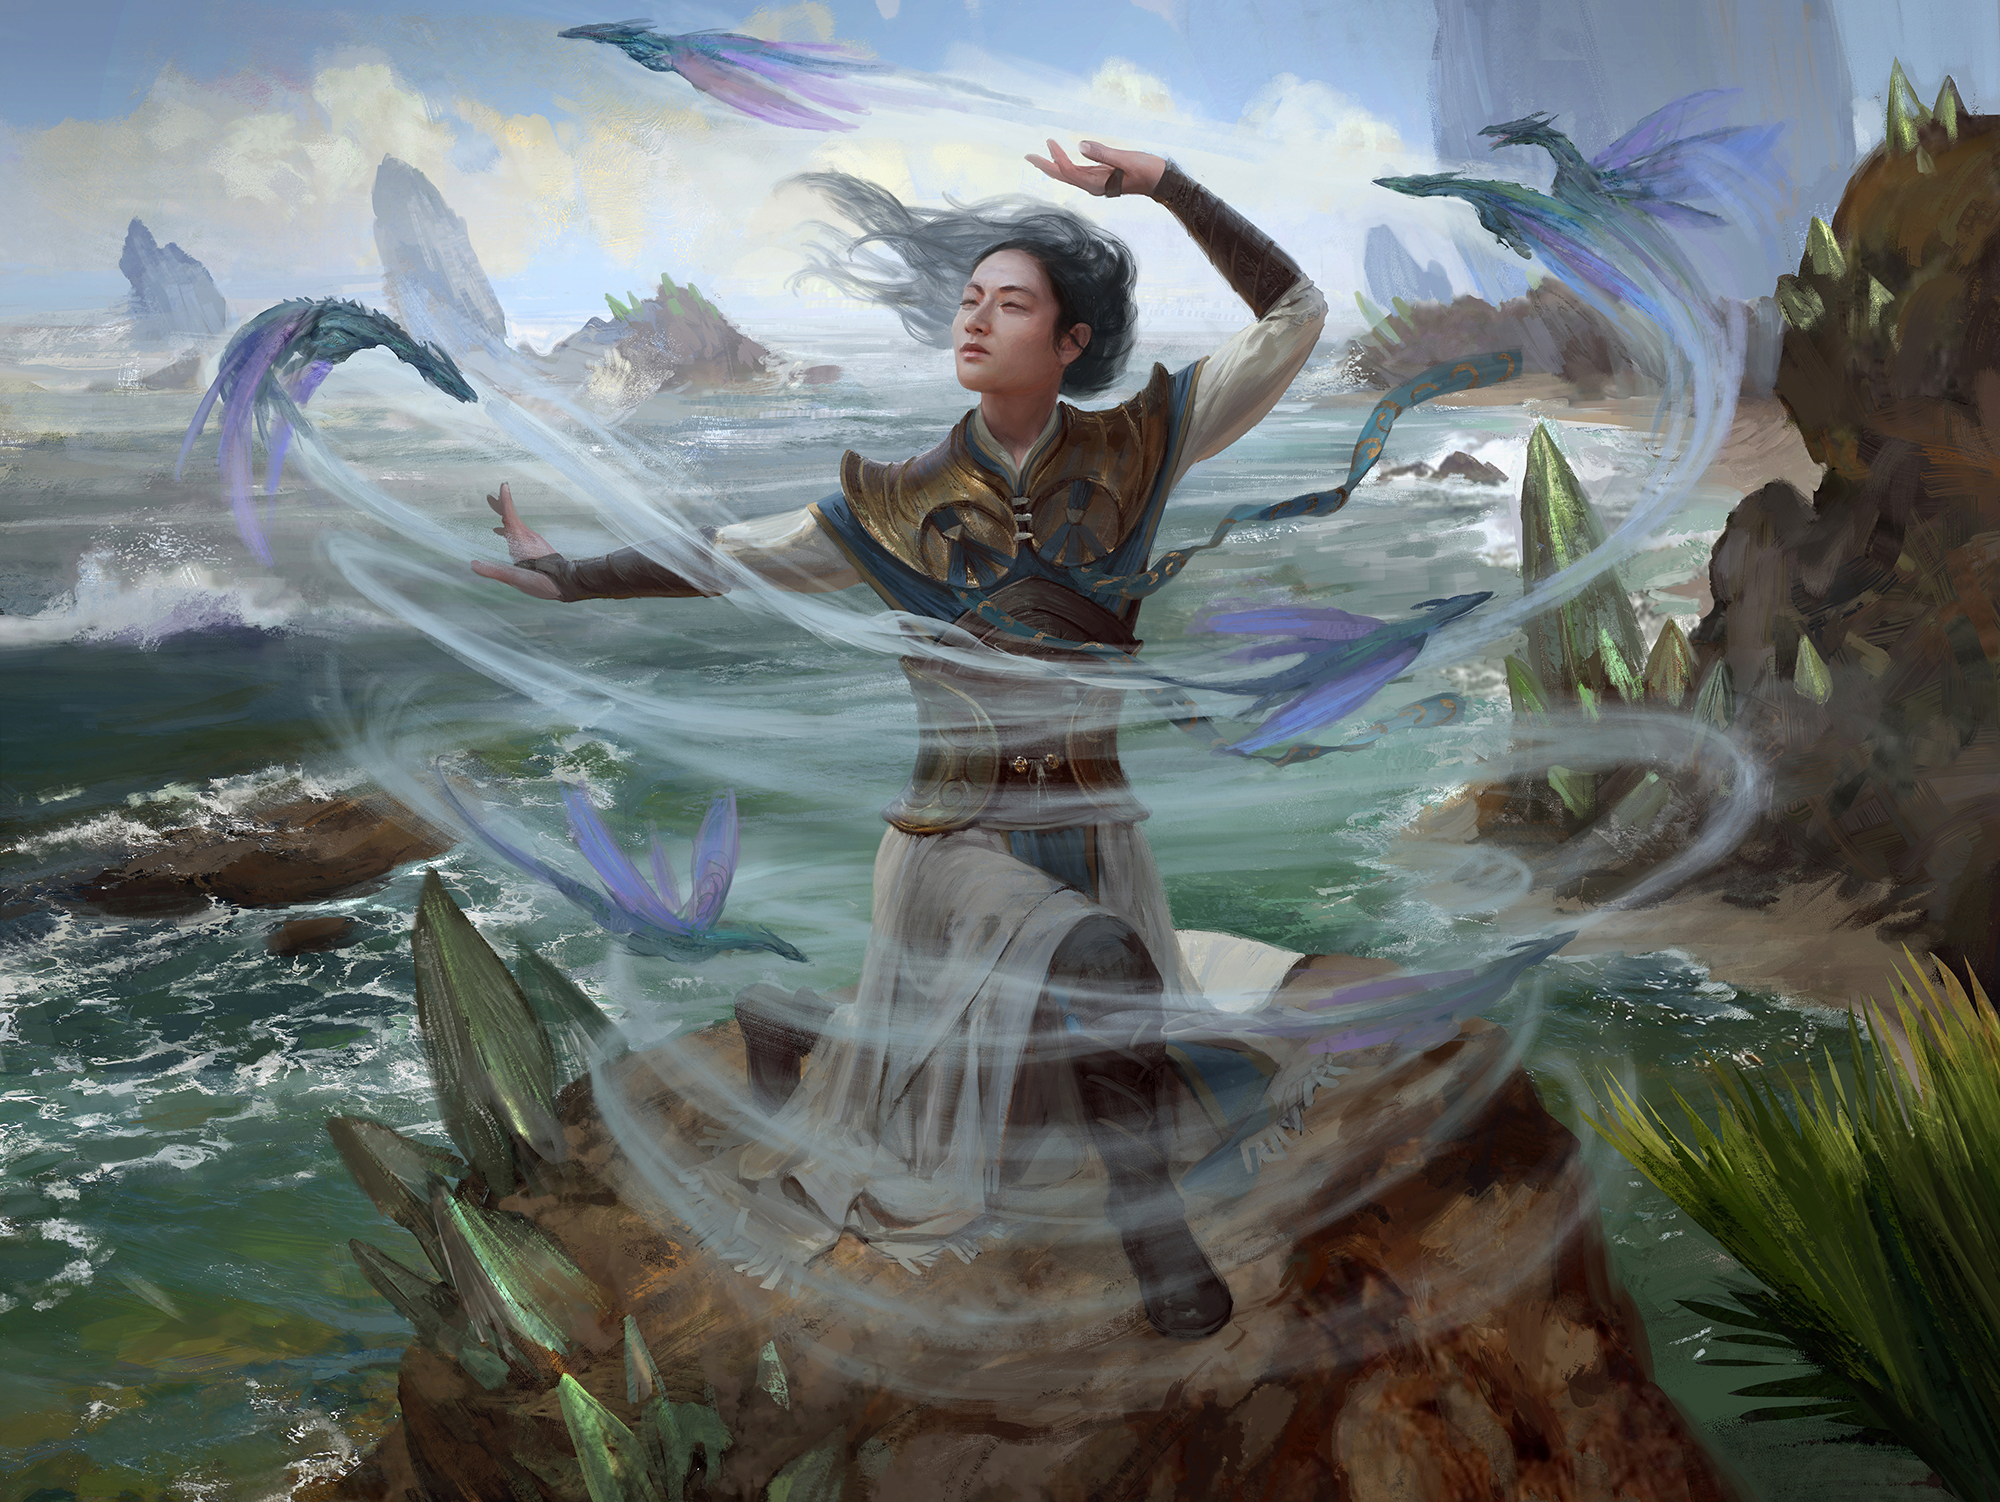 Whirlwind of Thought   Illustration by Bram Sels